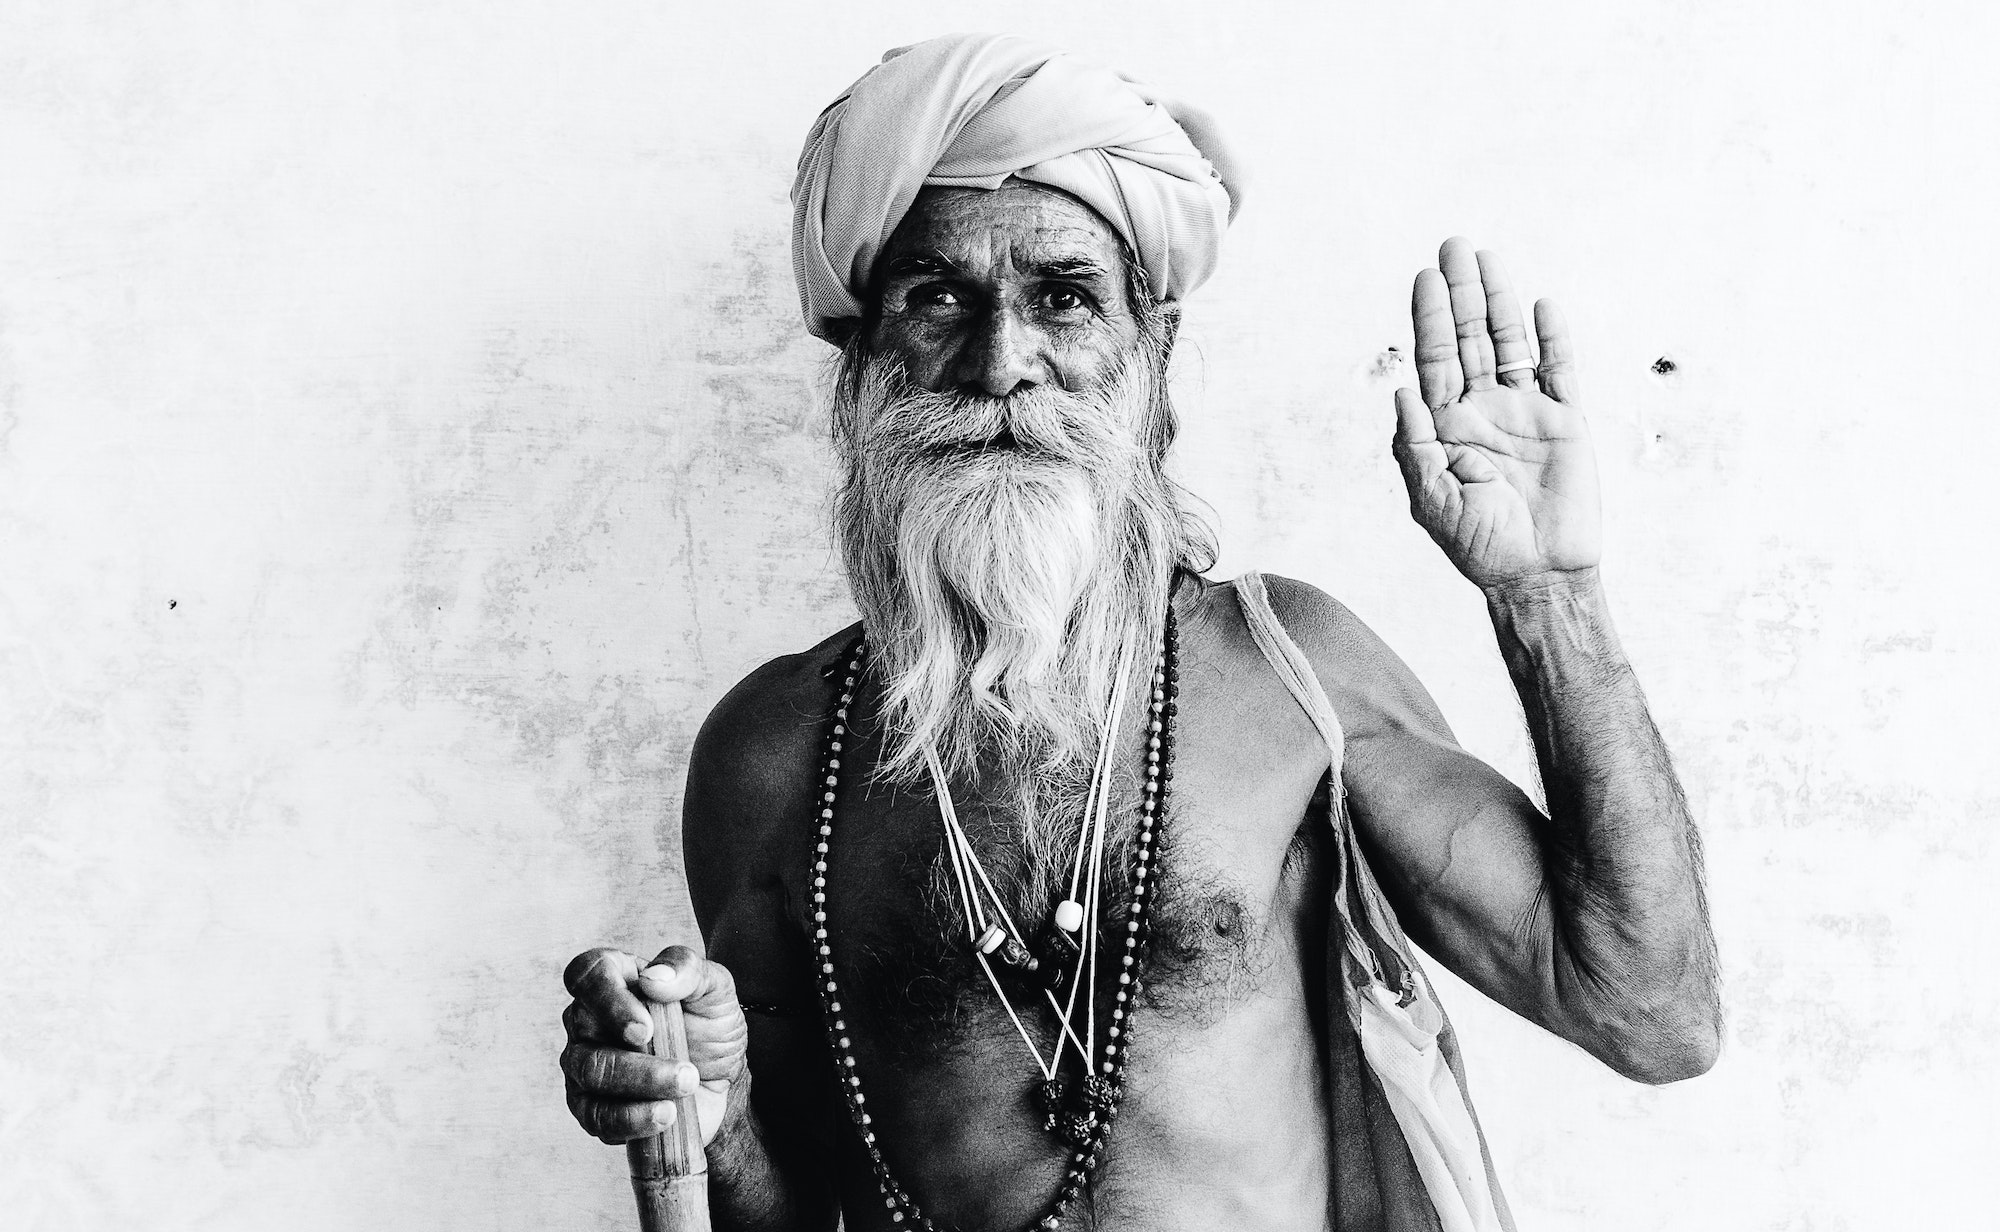 A Rabari tribesman poses for Laucht in the Jawai hills of Rajasthan, India.